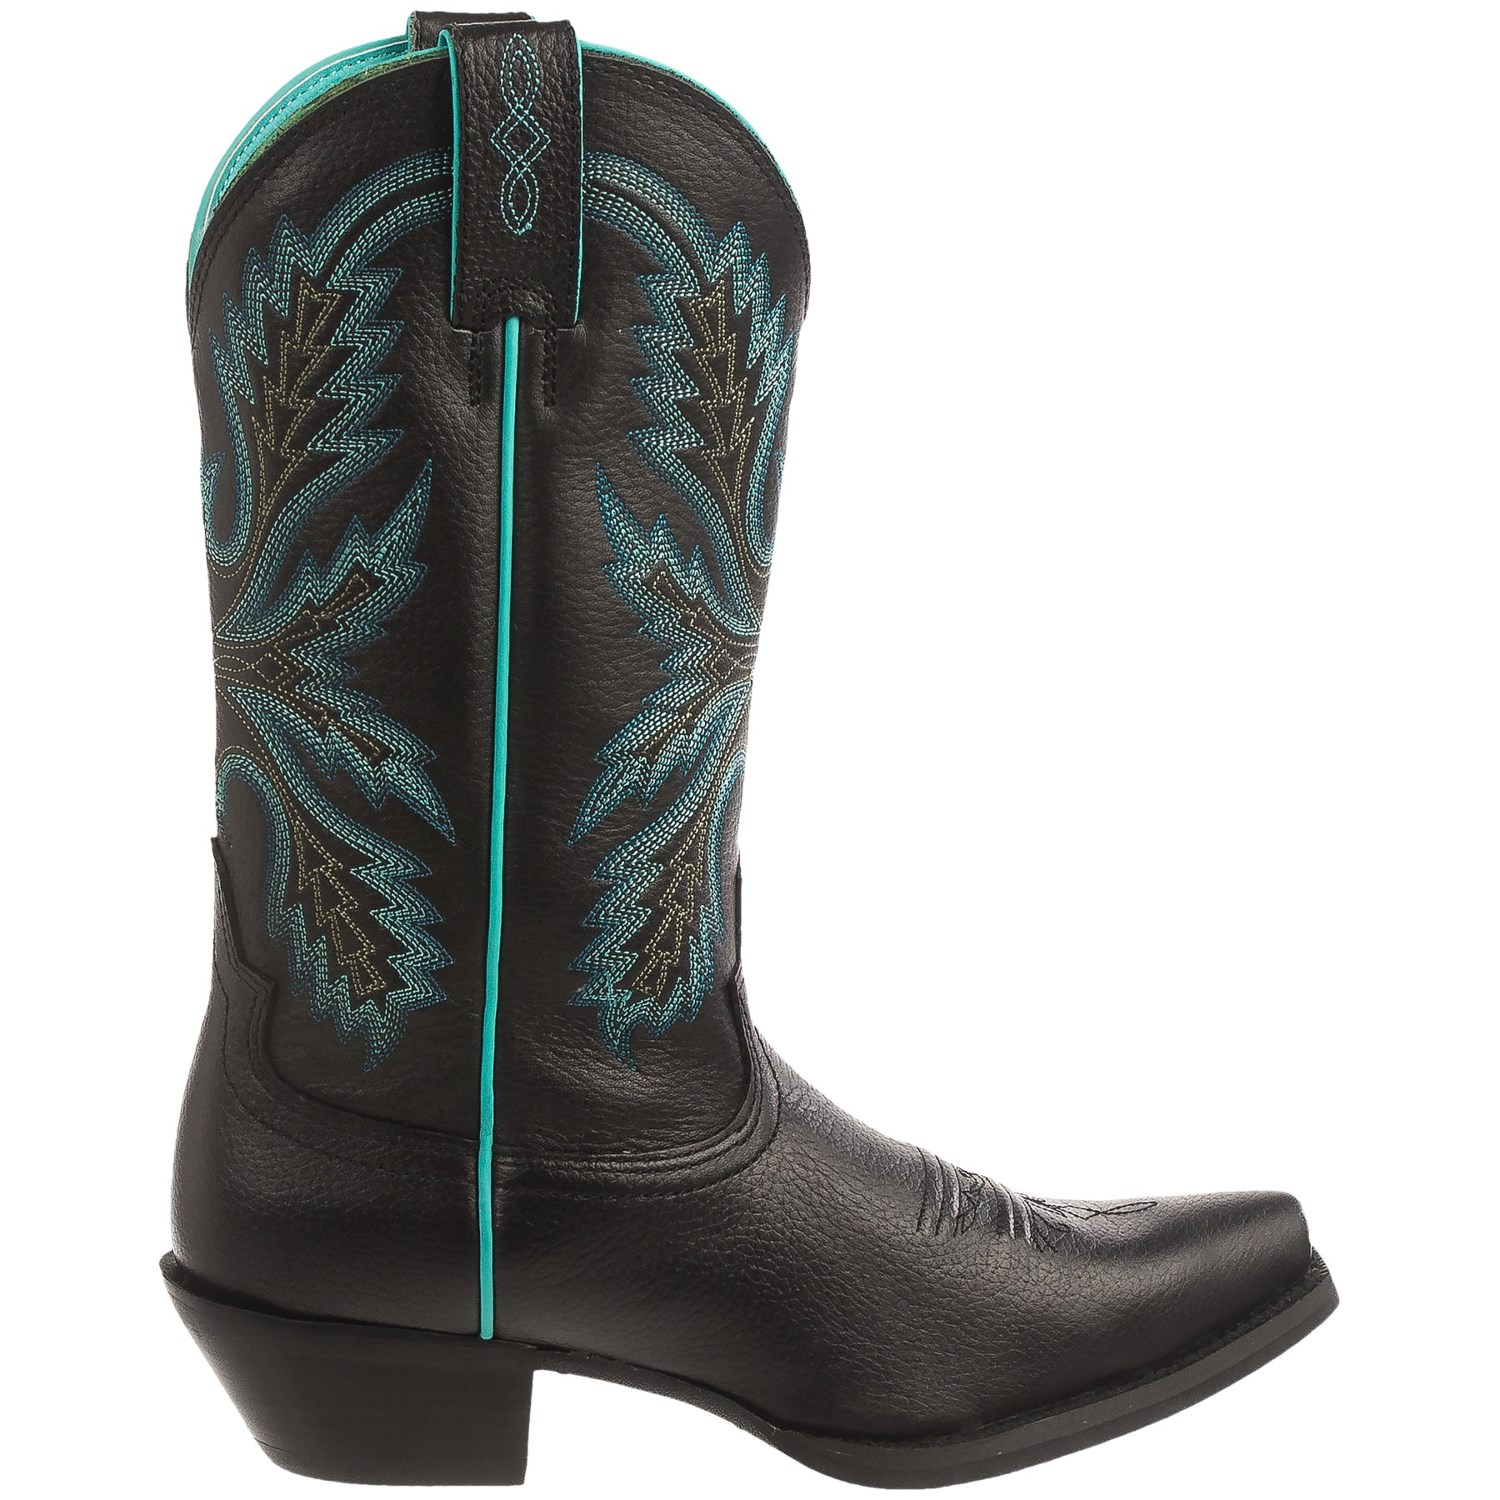 Lastest Save On Western Chief Womens Ditsy Dot Rain Boot,Multi,8 M US And More Save On ALDO Mens LOVERICIA Sneaker, Black Leather, 7 D US And More